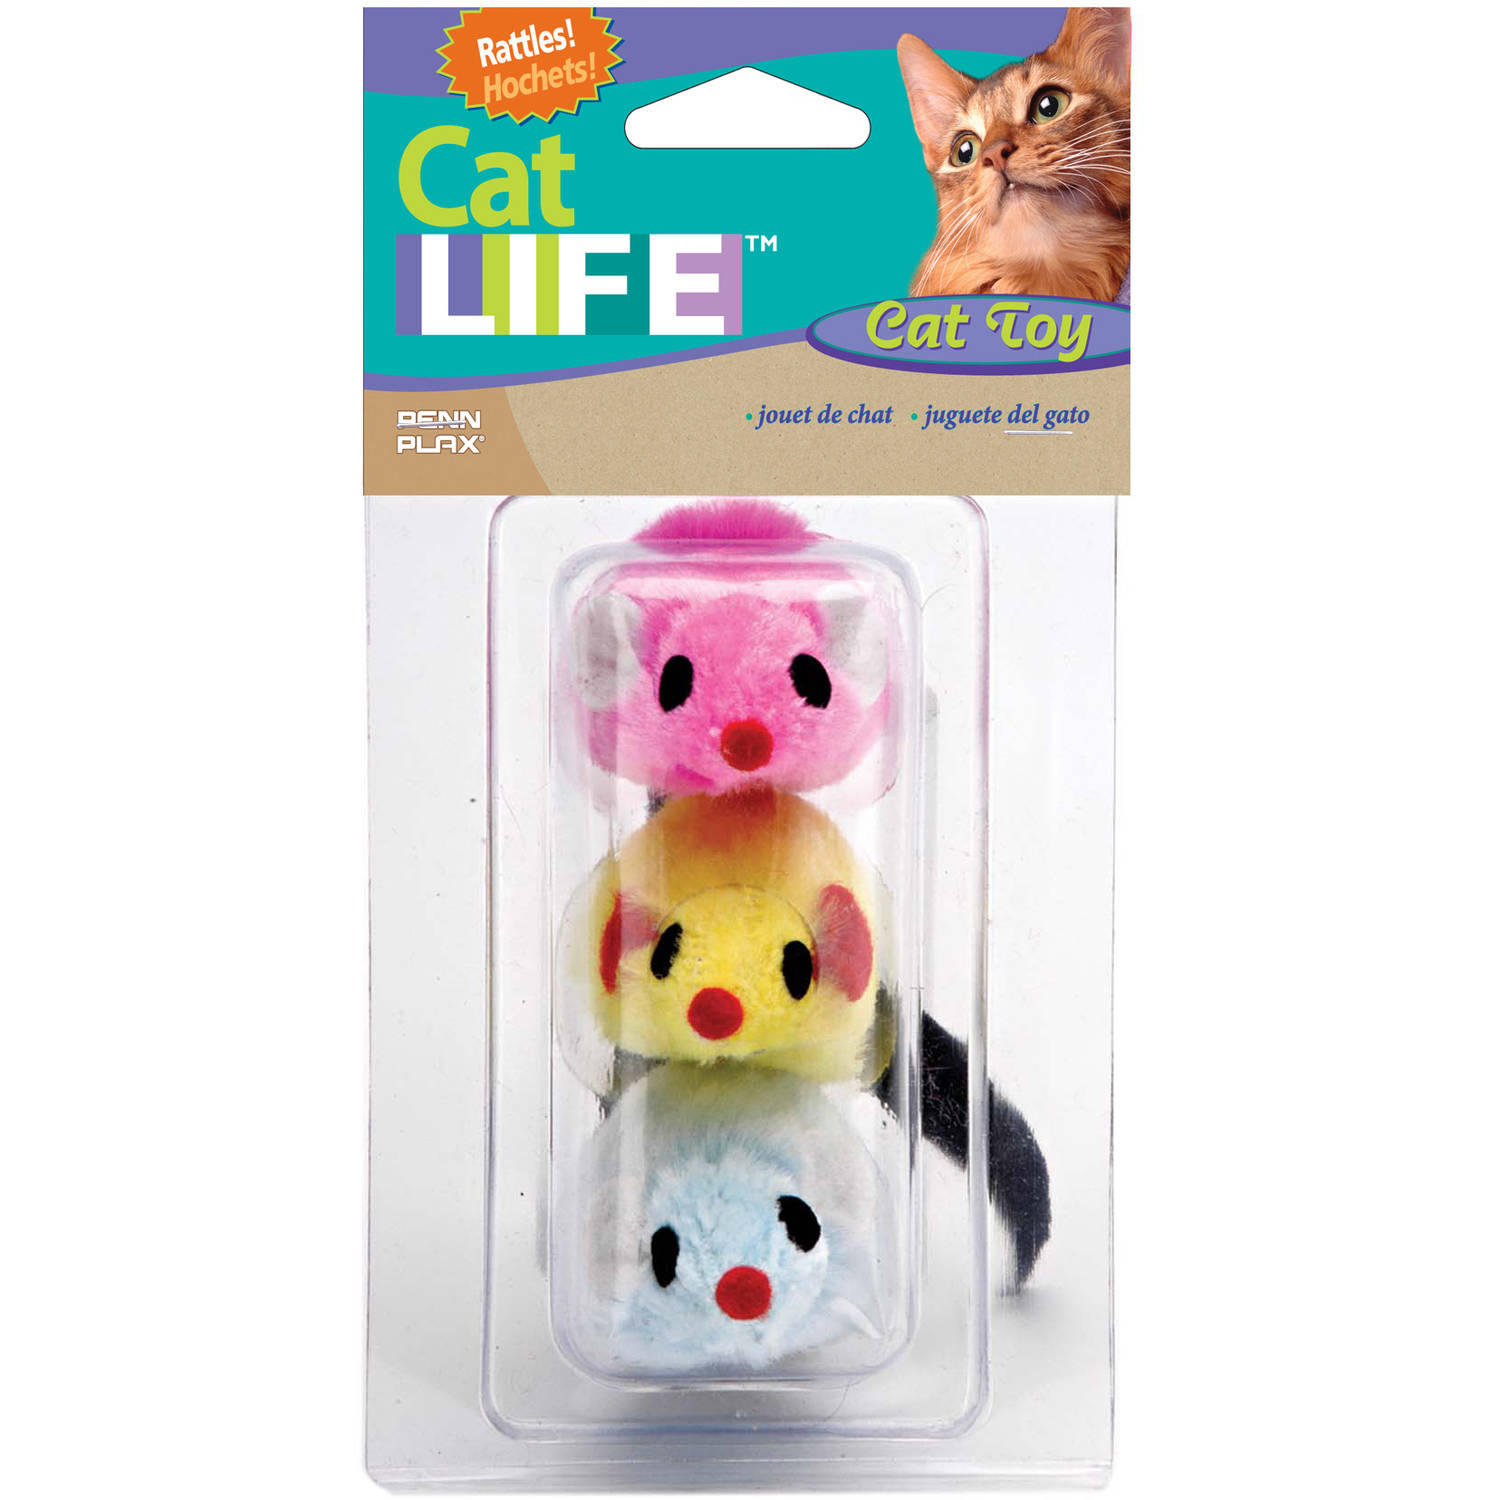 "Penn Plax CAT537 3"" Felt Mice Toys, Assorted Colors, 3-Pack"